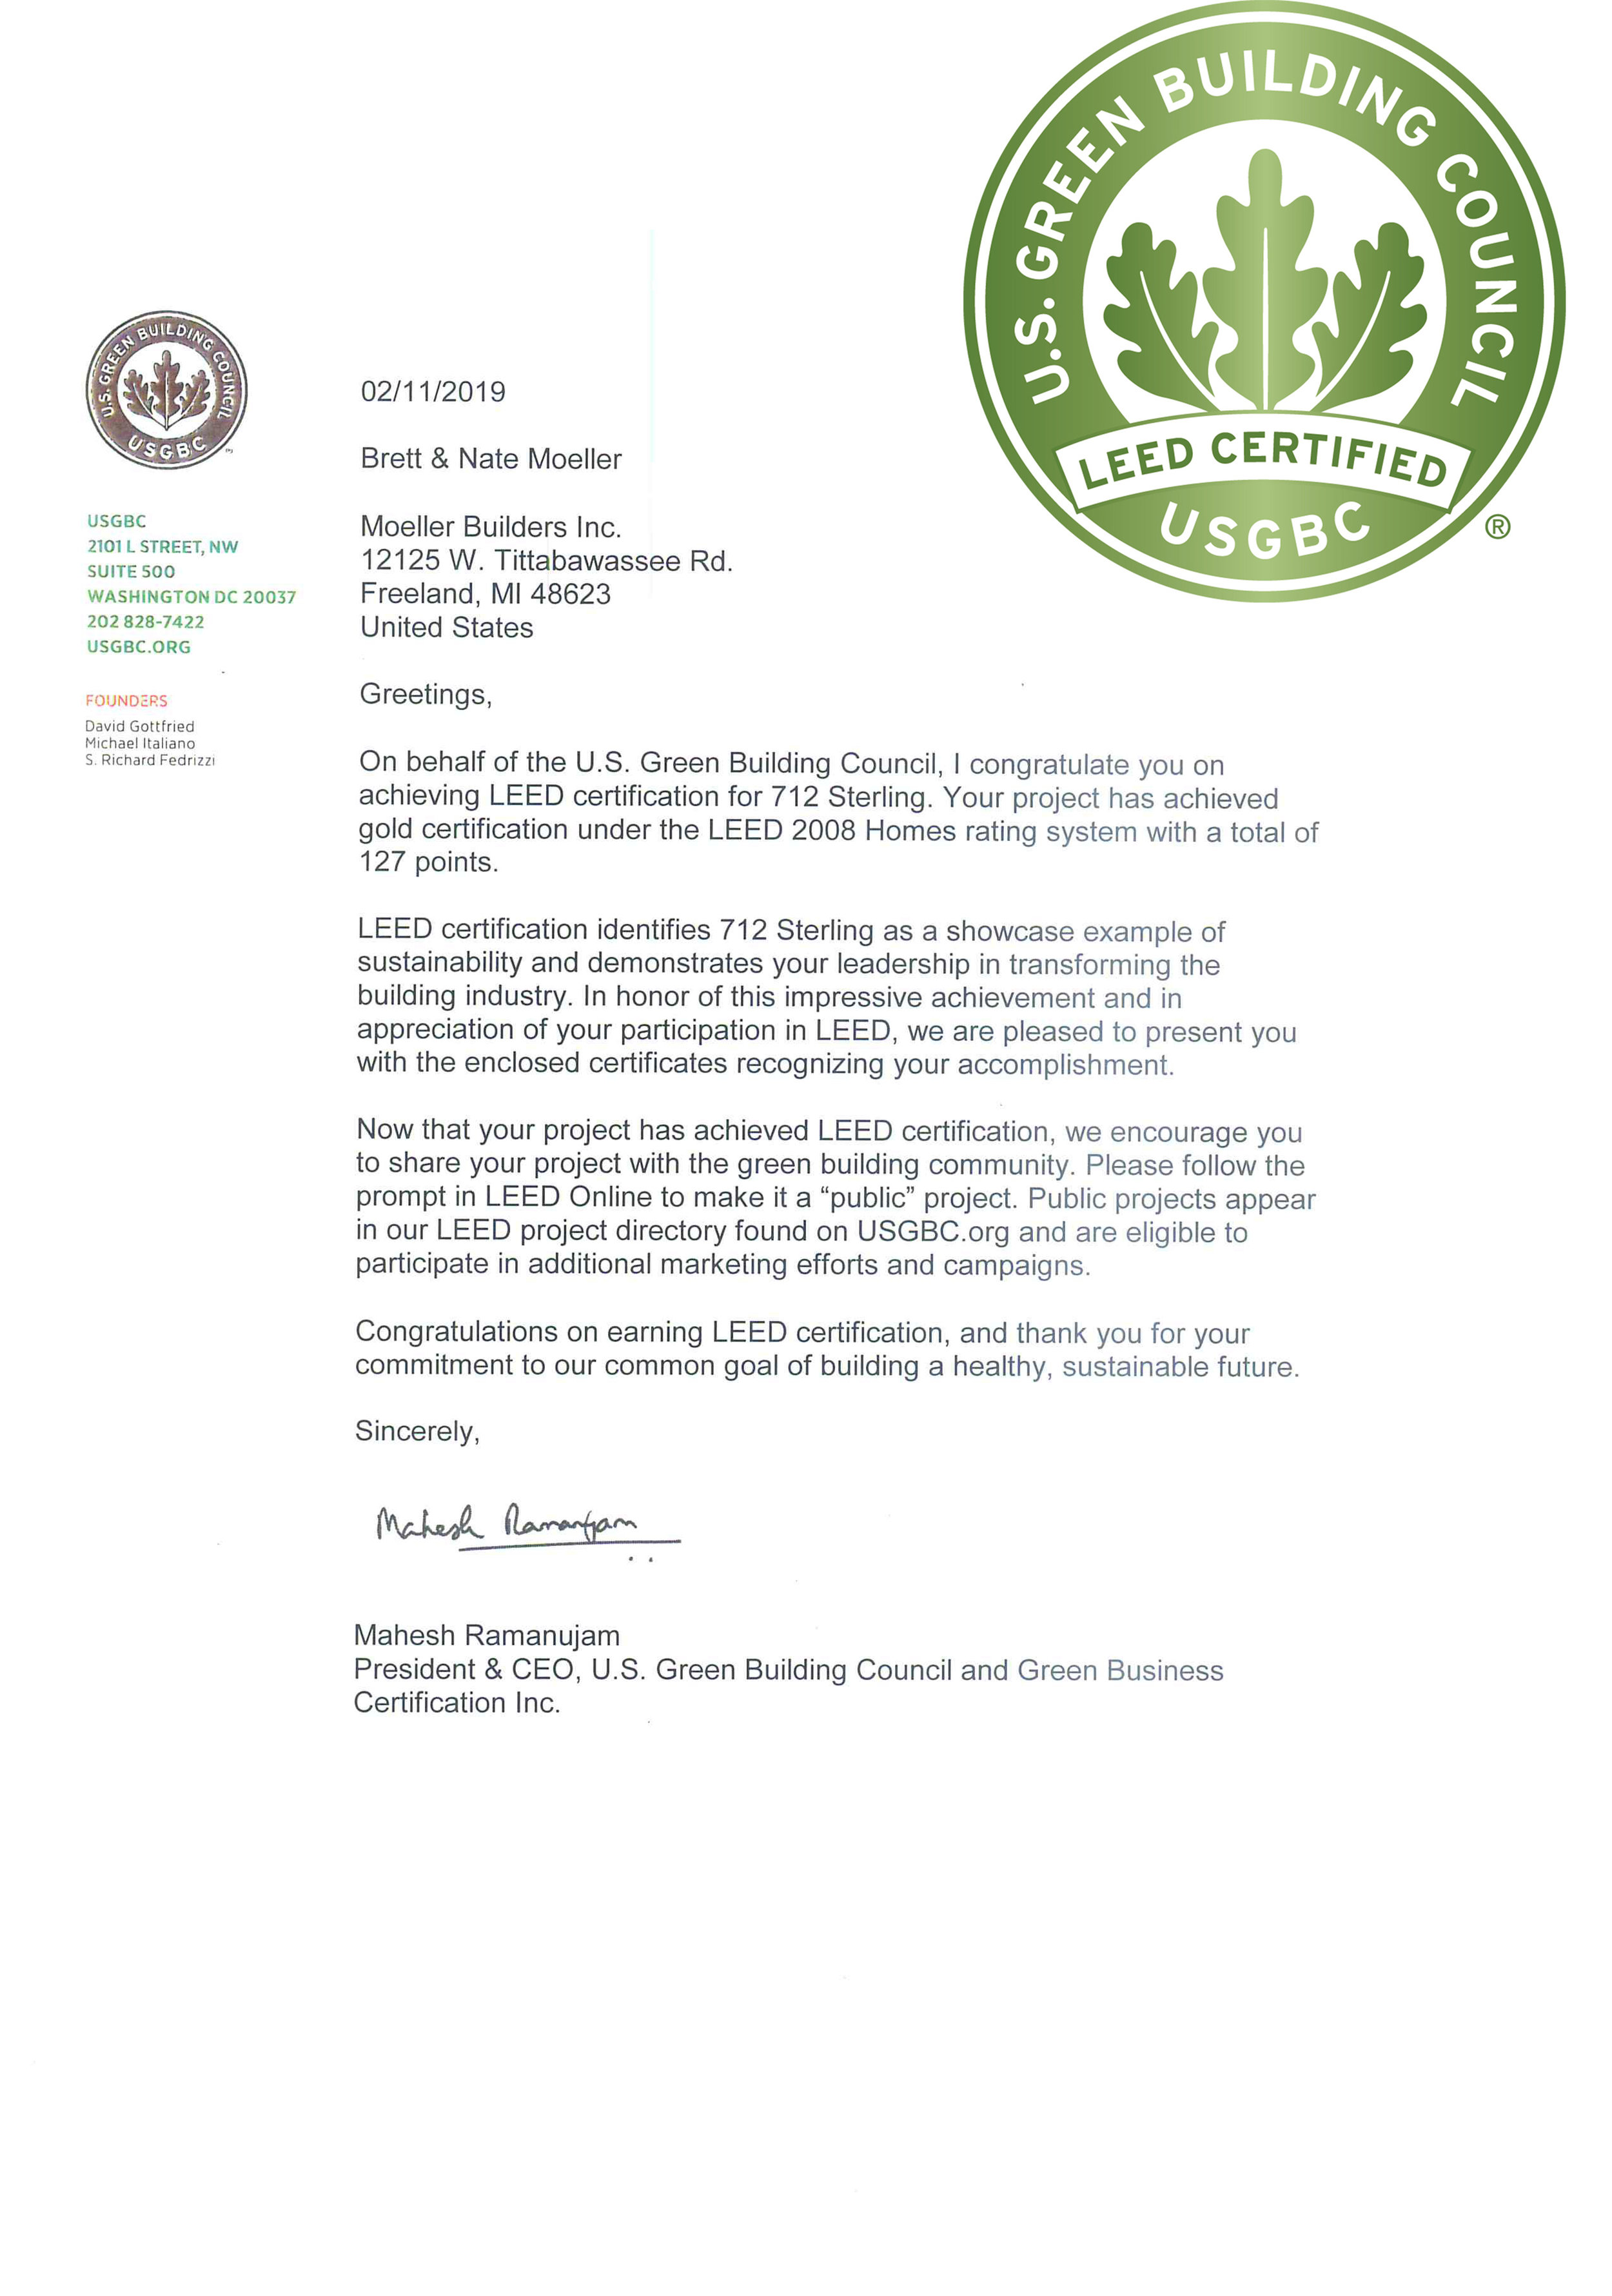 Moeller Obtains LEED Certification - We're proud to accomplish this milestone and look forward to helping you realize your dream green build.